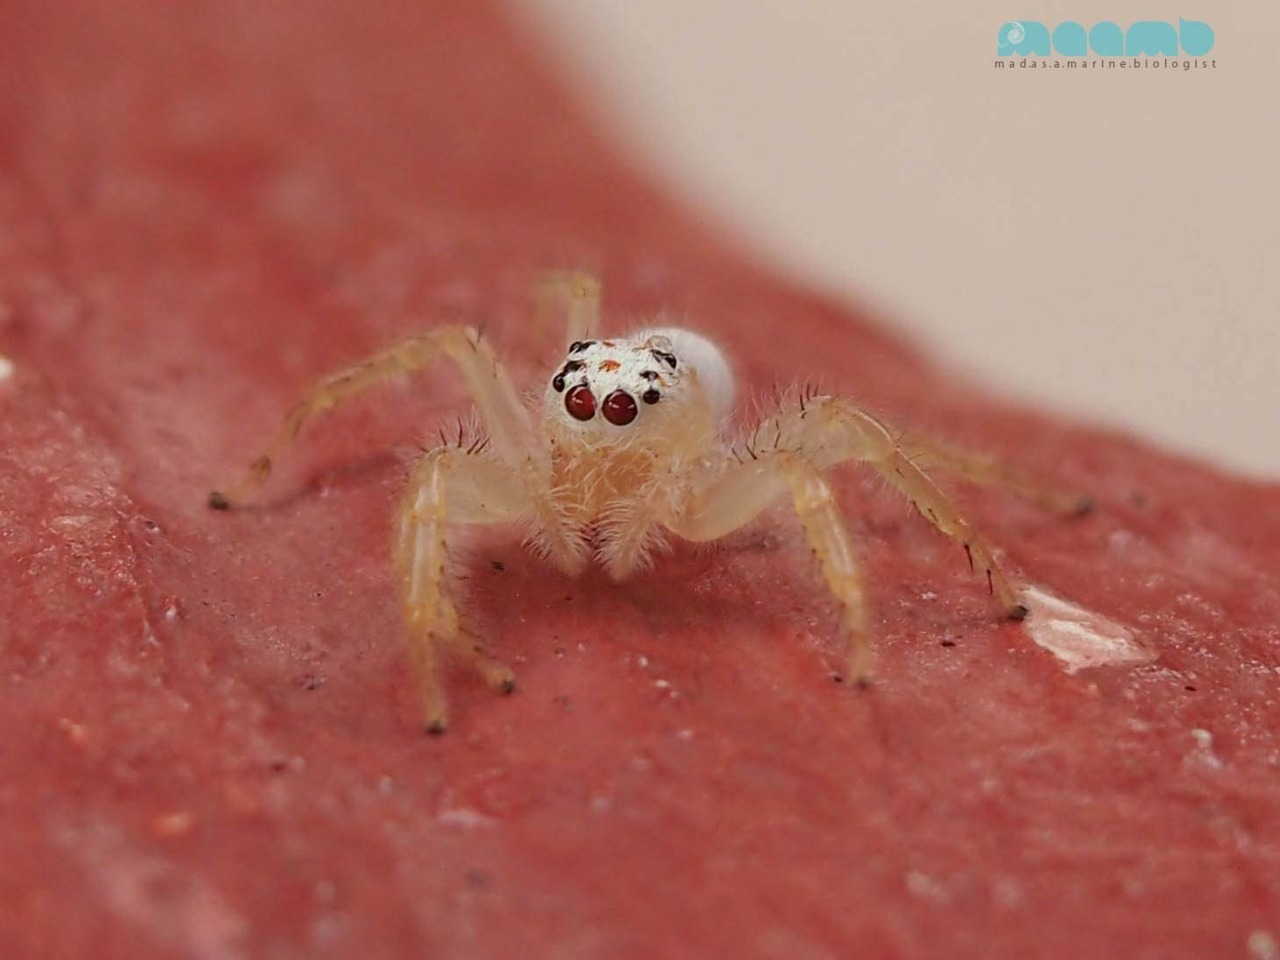 Cutie pie spider allows me to indulge in some much missed macro photography!